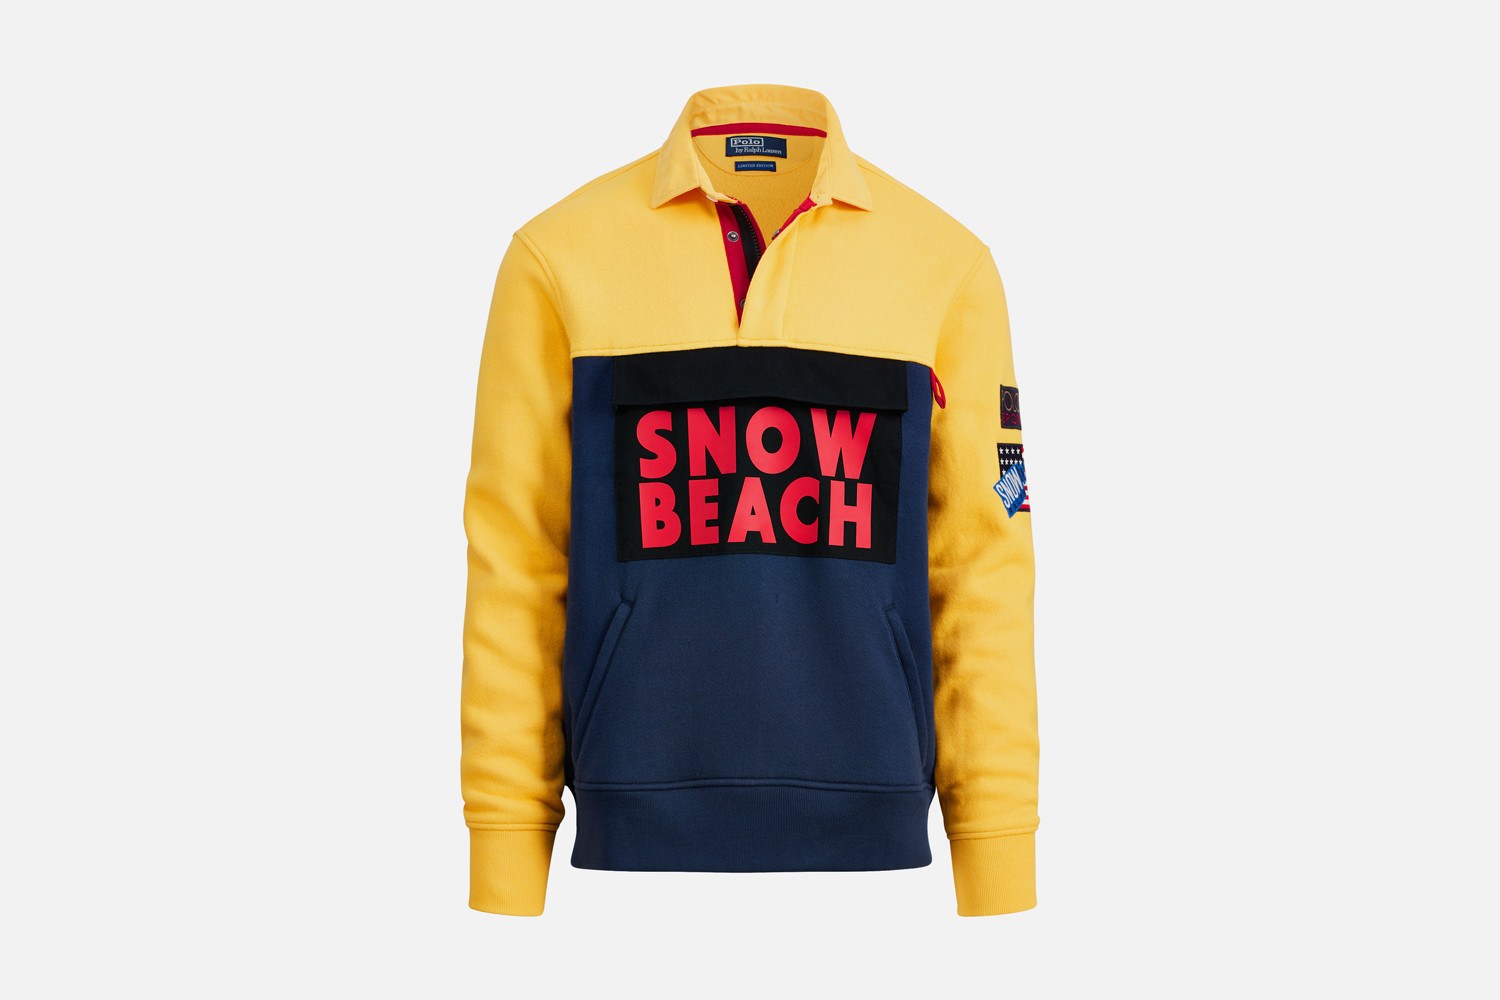 History Of Polo Ralph Lauren Snow Beach Capsule Collection Of 93